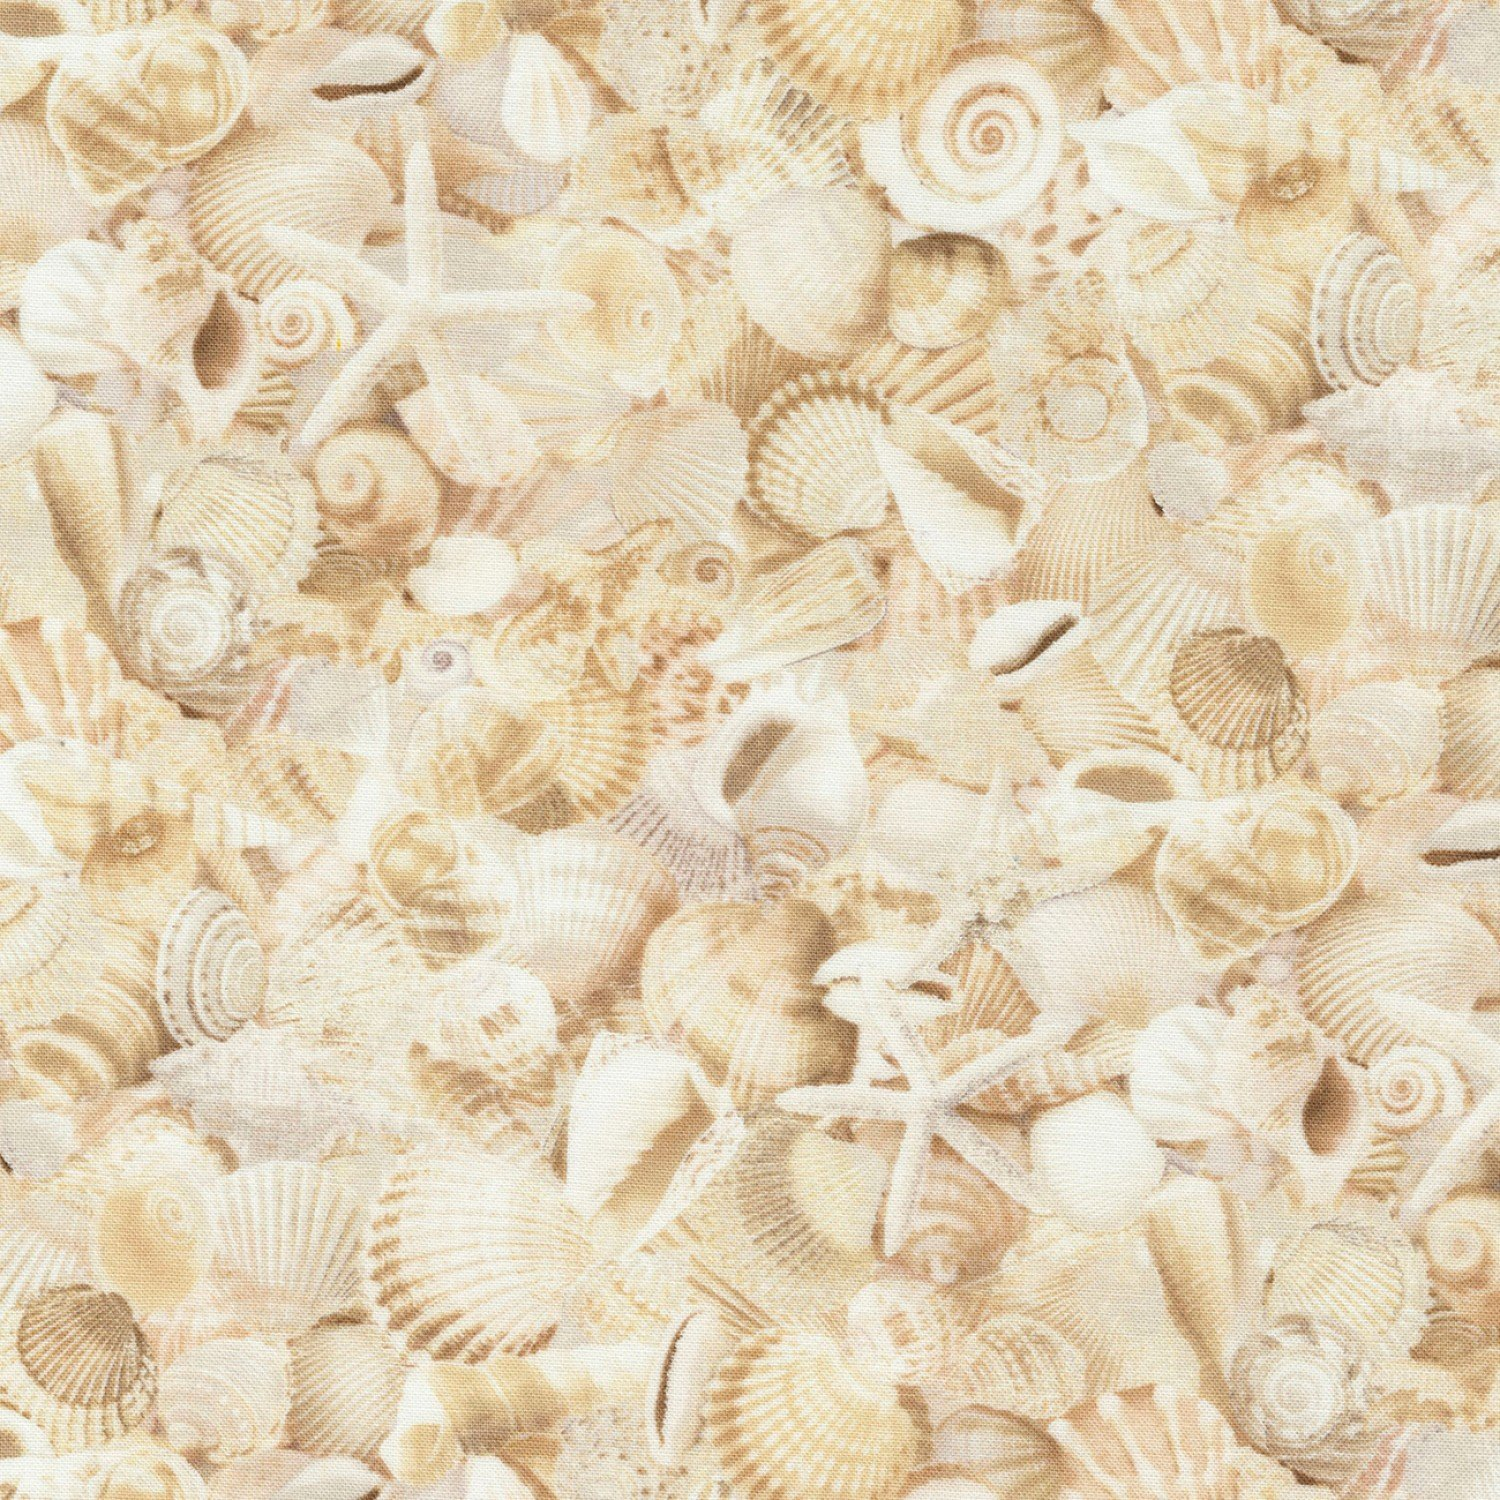 Welcome to the Beach C6743 Packed Seashells by Timeless Treasures